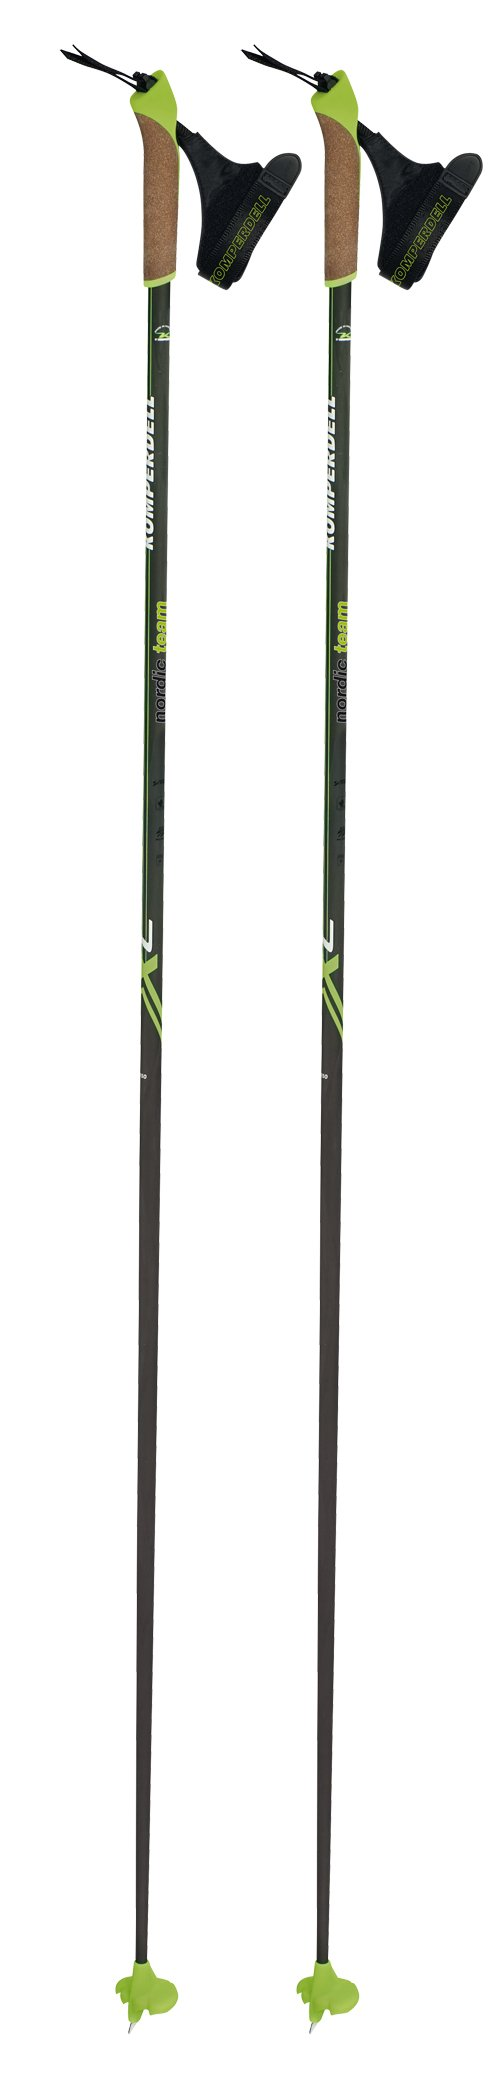 Komperdell 520230610 Nordic Carbon Team, Black, 145cm by Komperdell